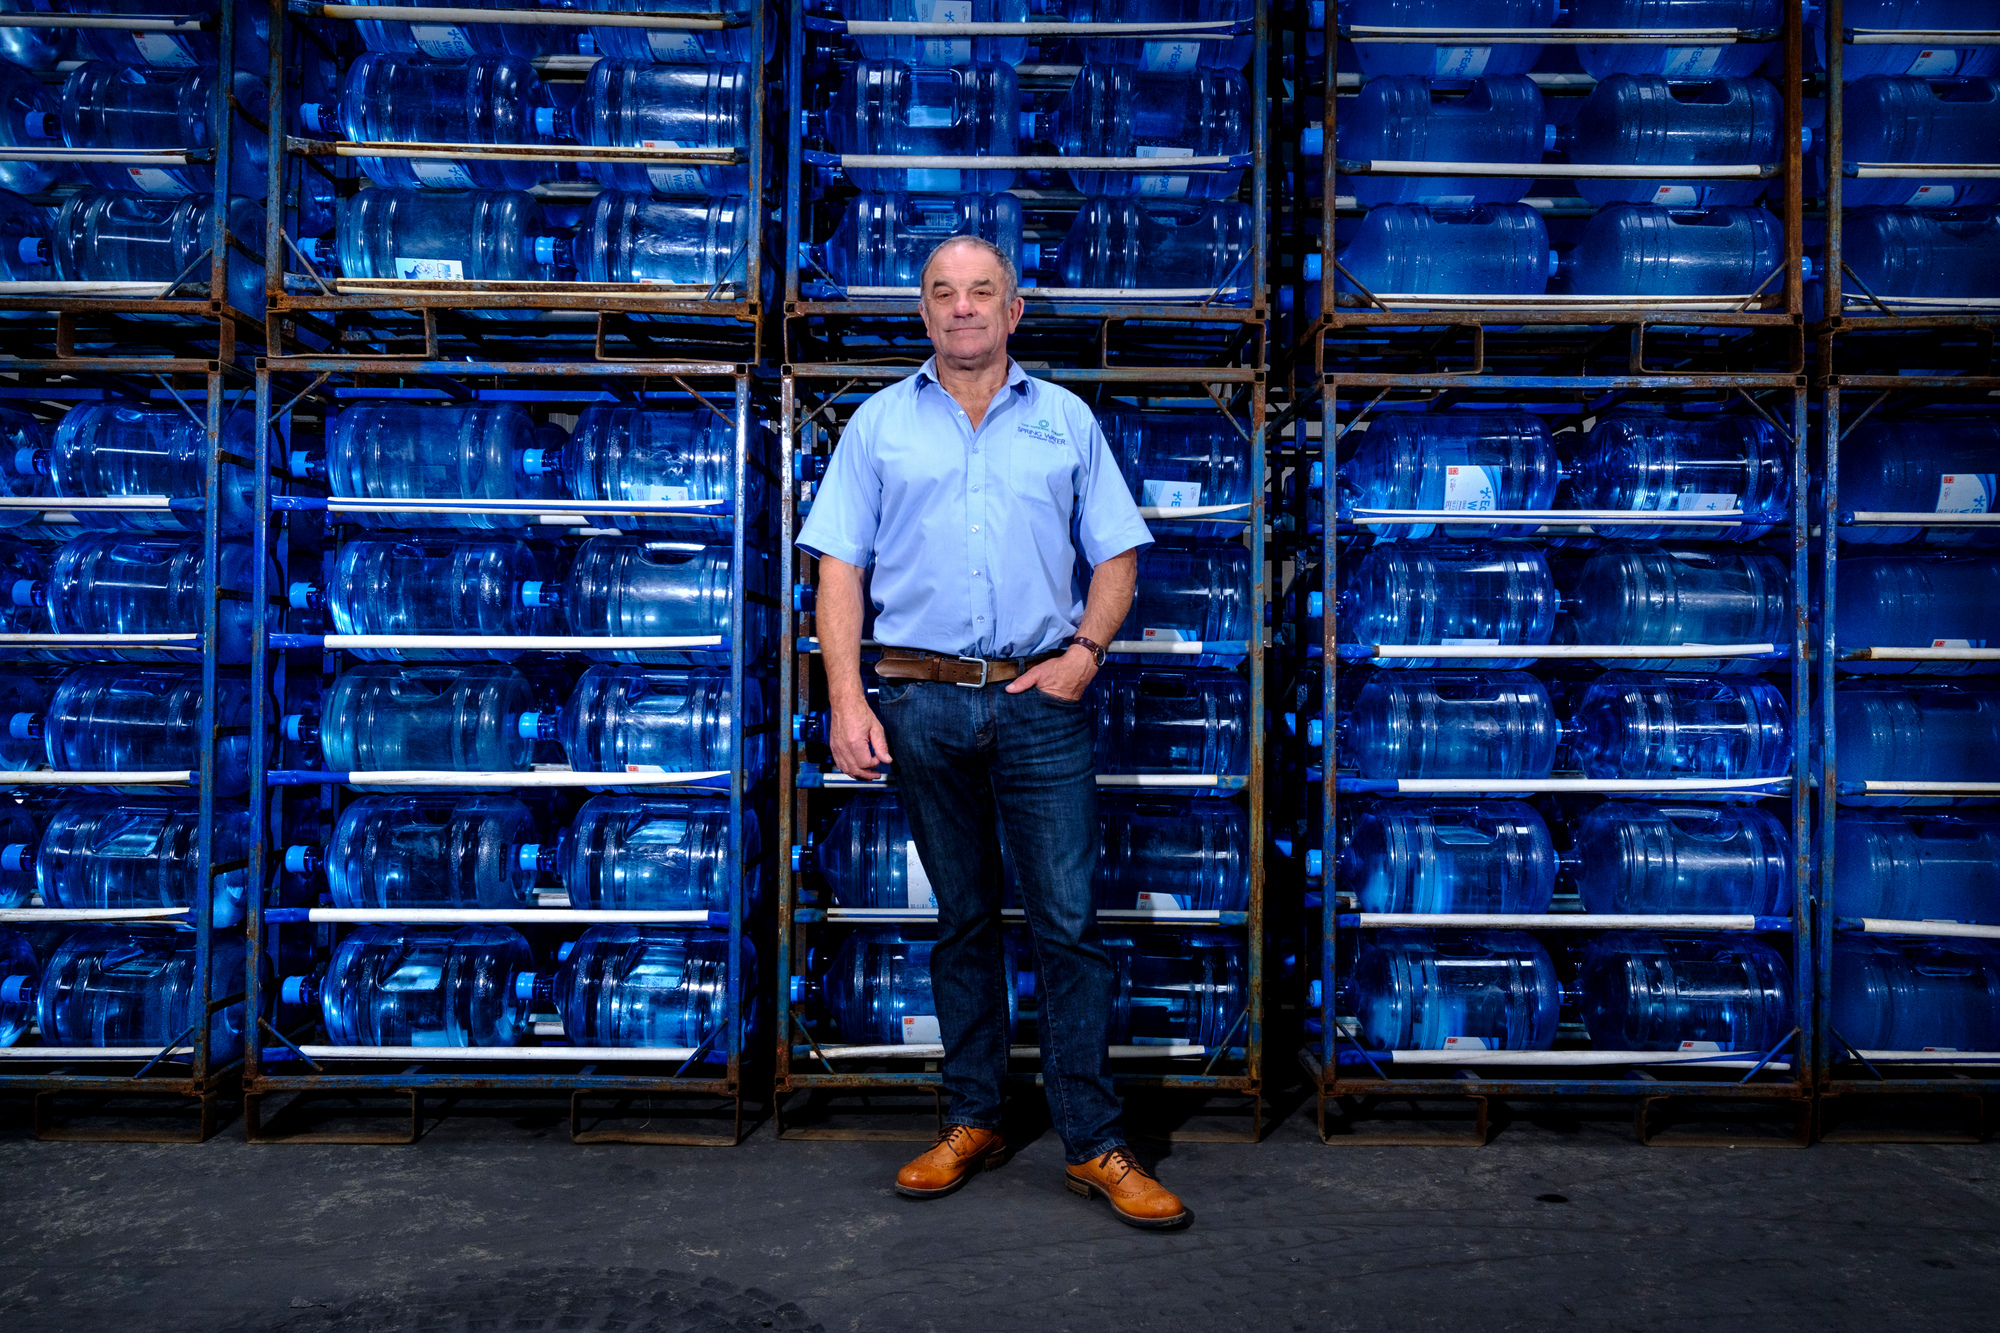 Man in corporate workwear stands in warehouse